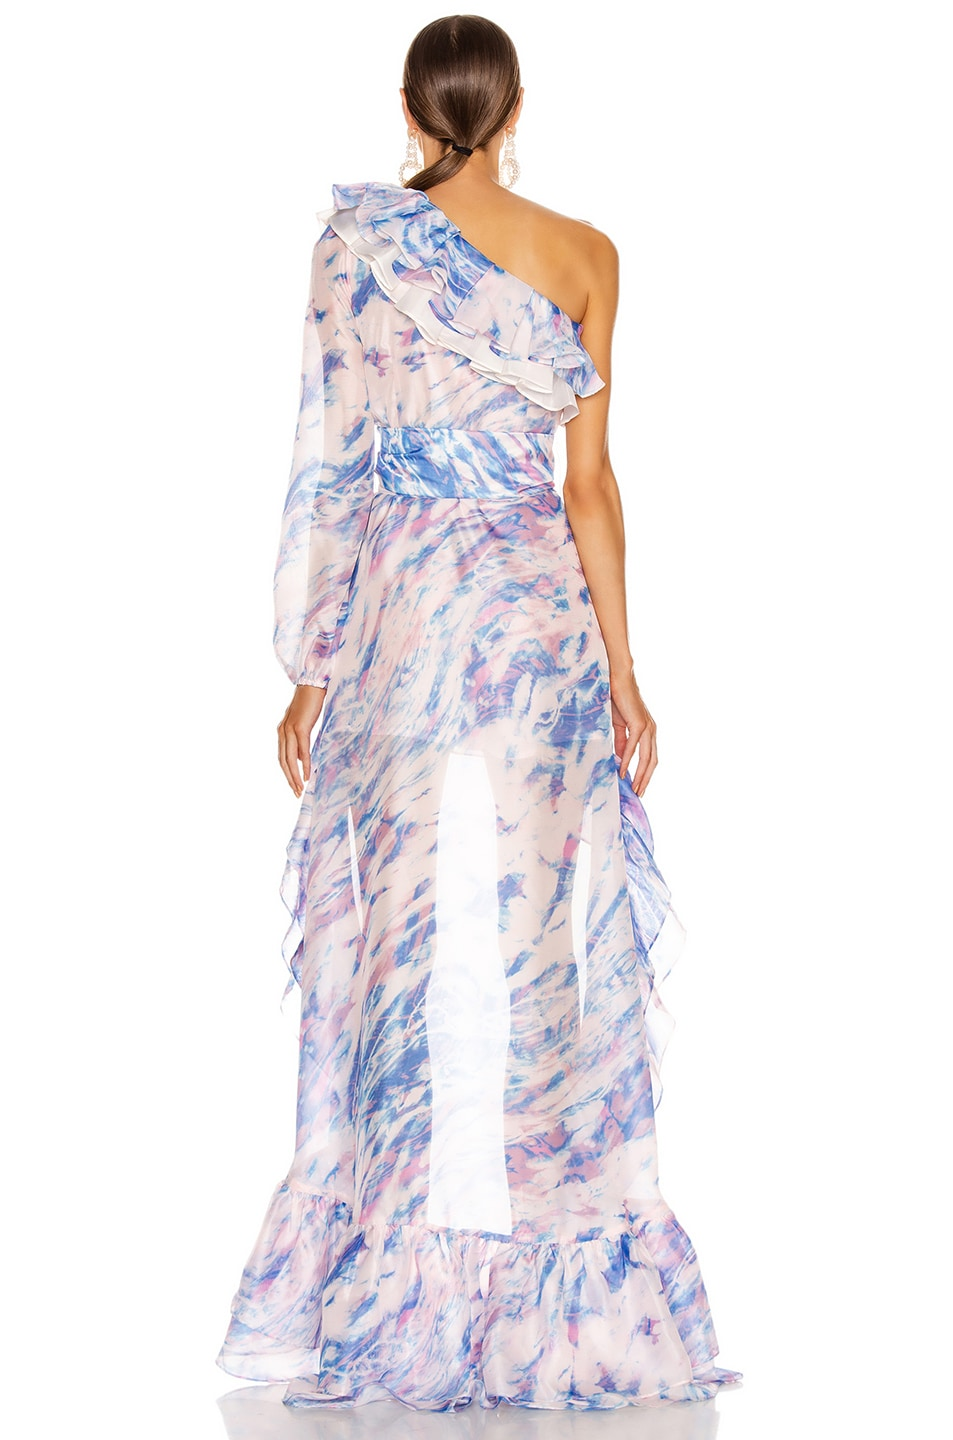 Image 4 of Atoir The Whirlwind Dress in Dreamscape Print